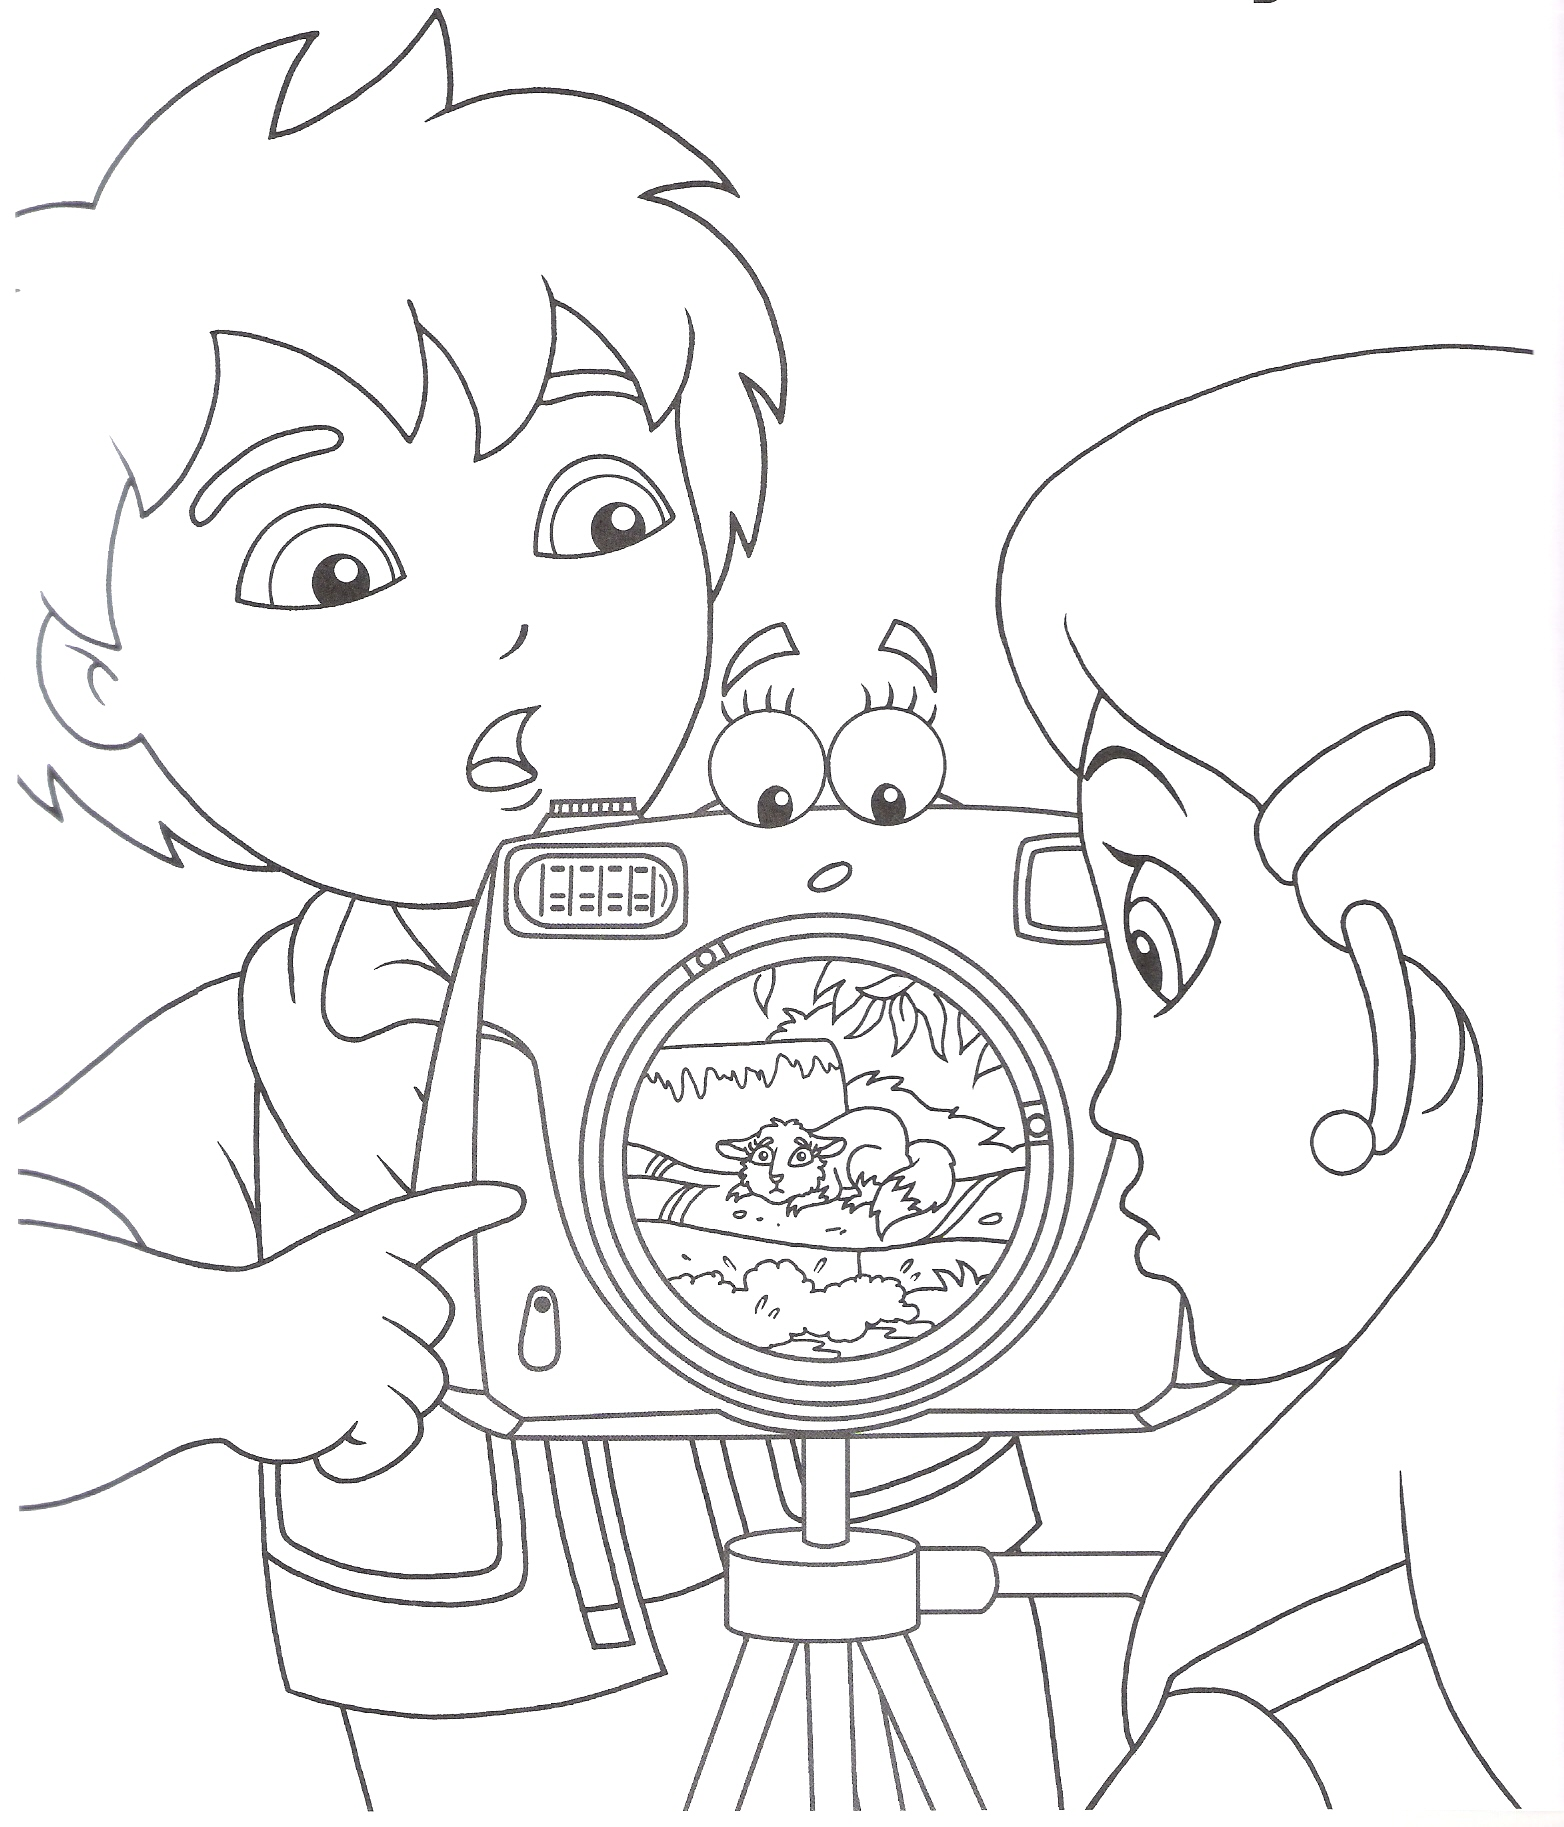 diego christmas coloring pages - photo#15